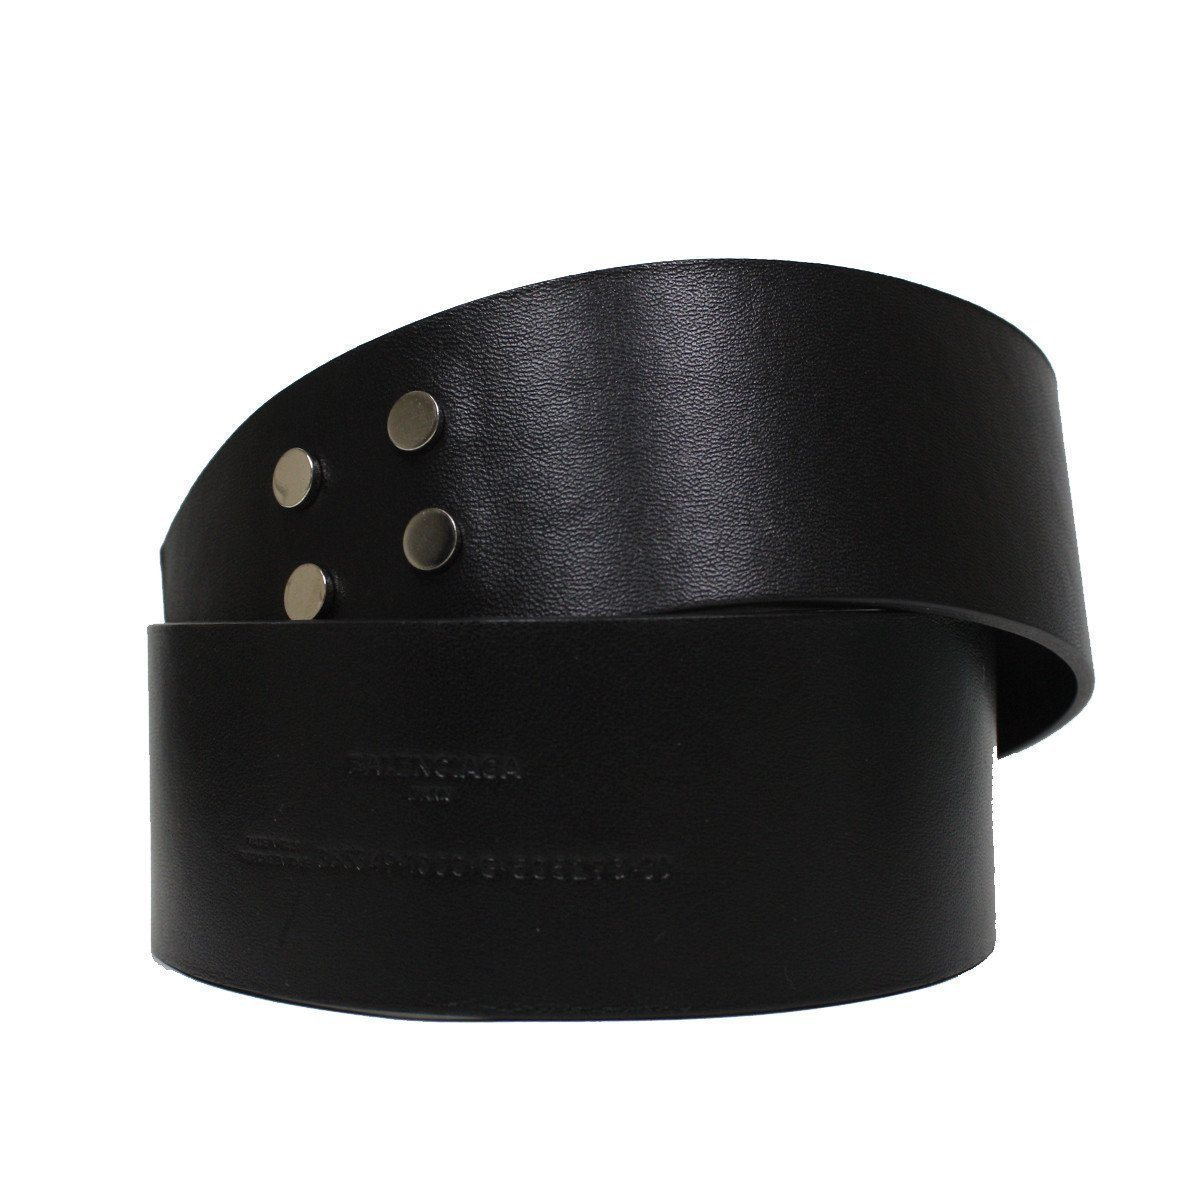 Balenciaga Unisex Couture Wide Leather Waist Belt Size: 90/36 365358 Belts Balenciaga